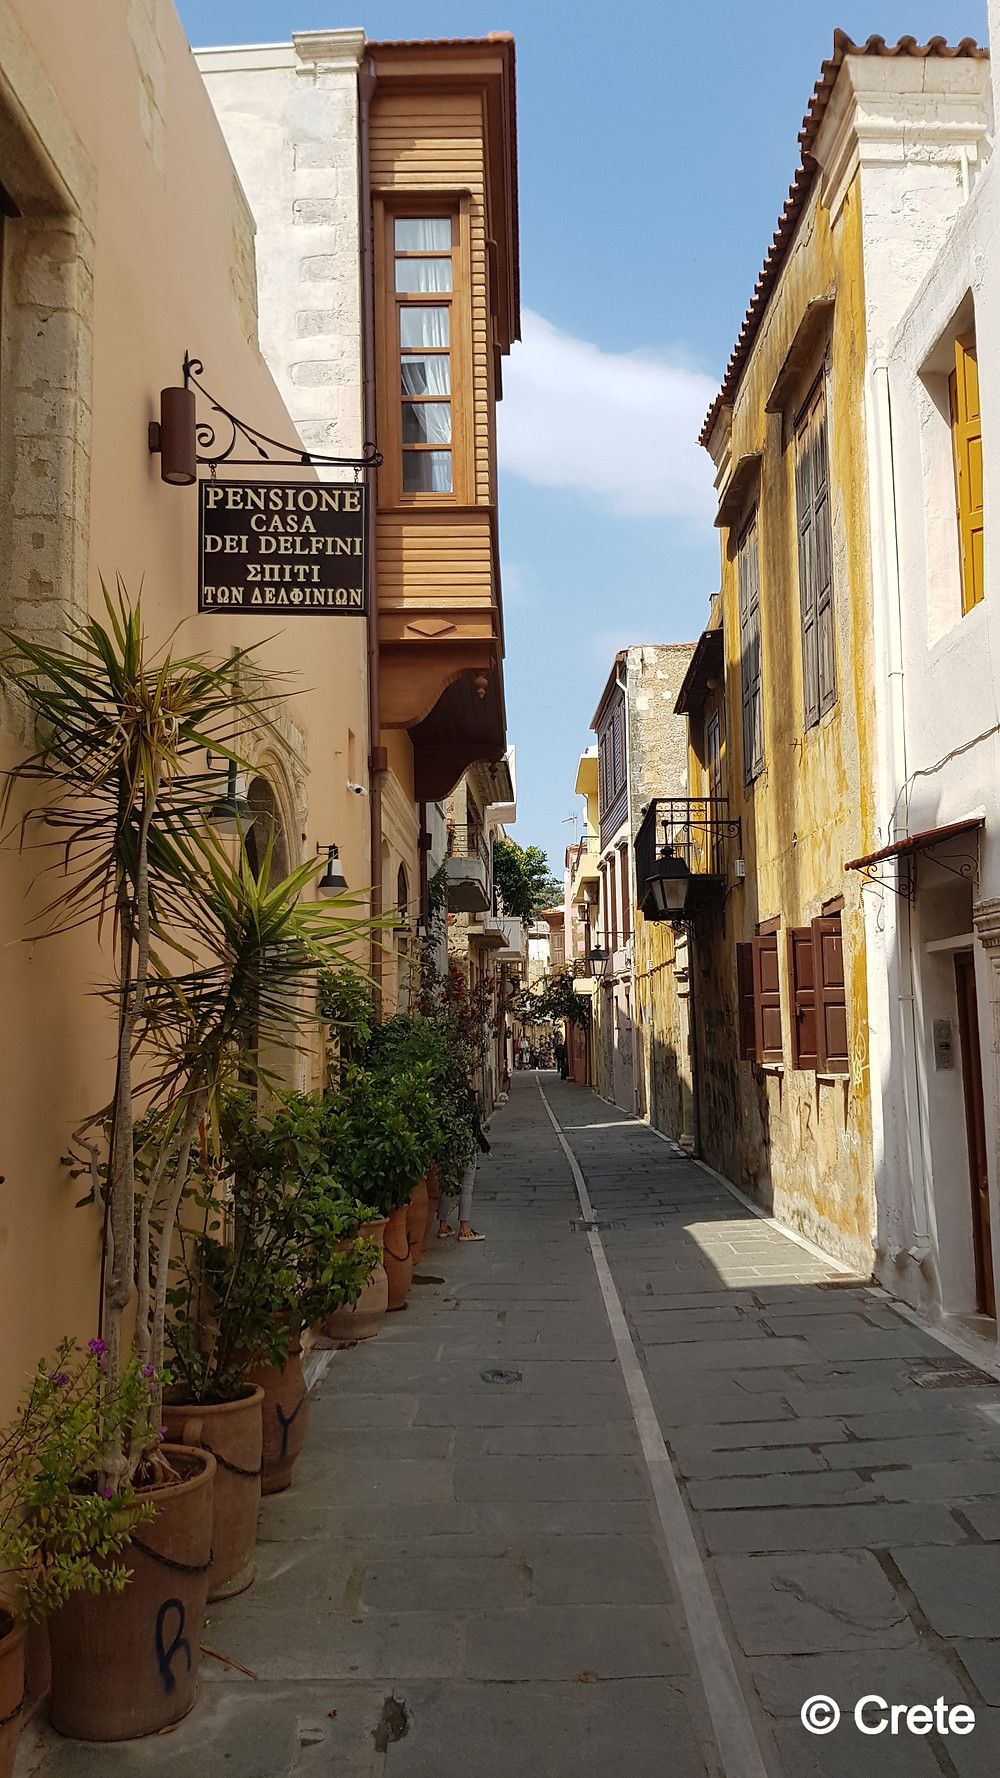 The narrow streets of Rethymno town are packed full of culture, history, shopping, tavernas, cafes, bars and intrigue.